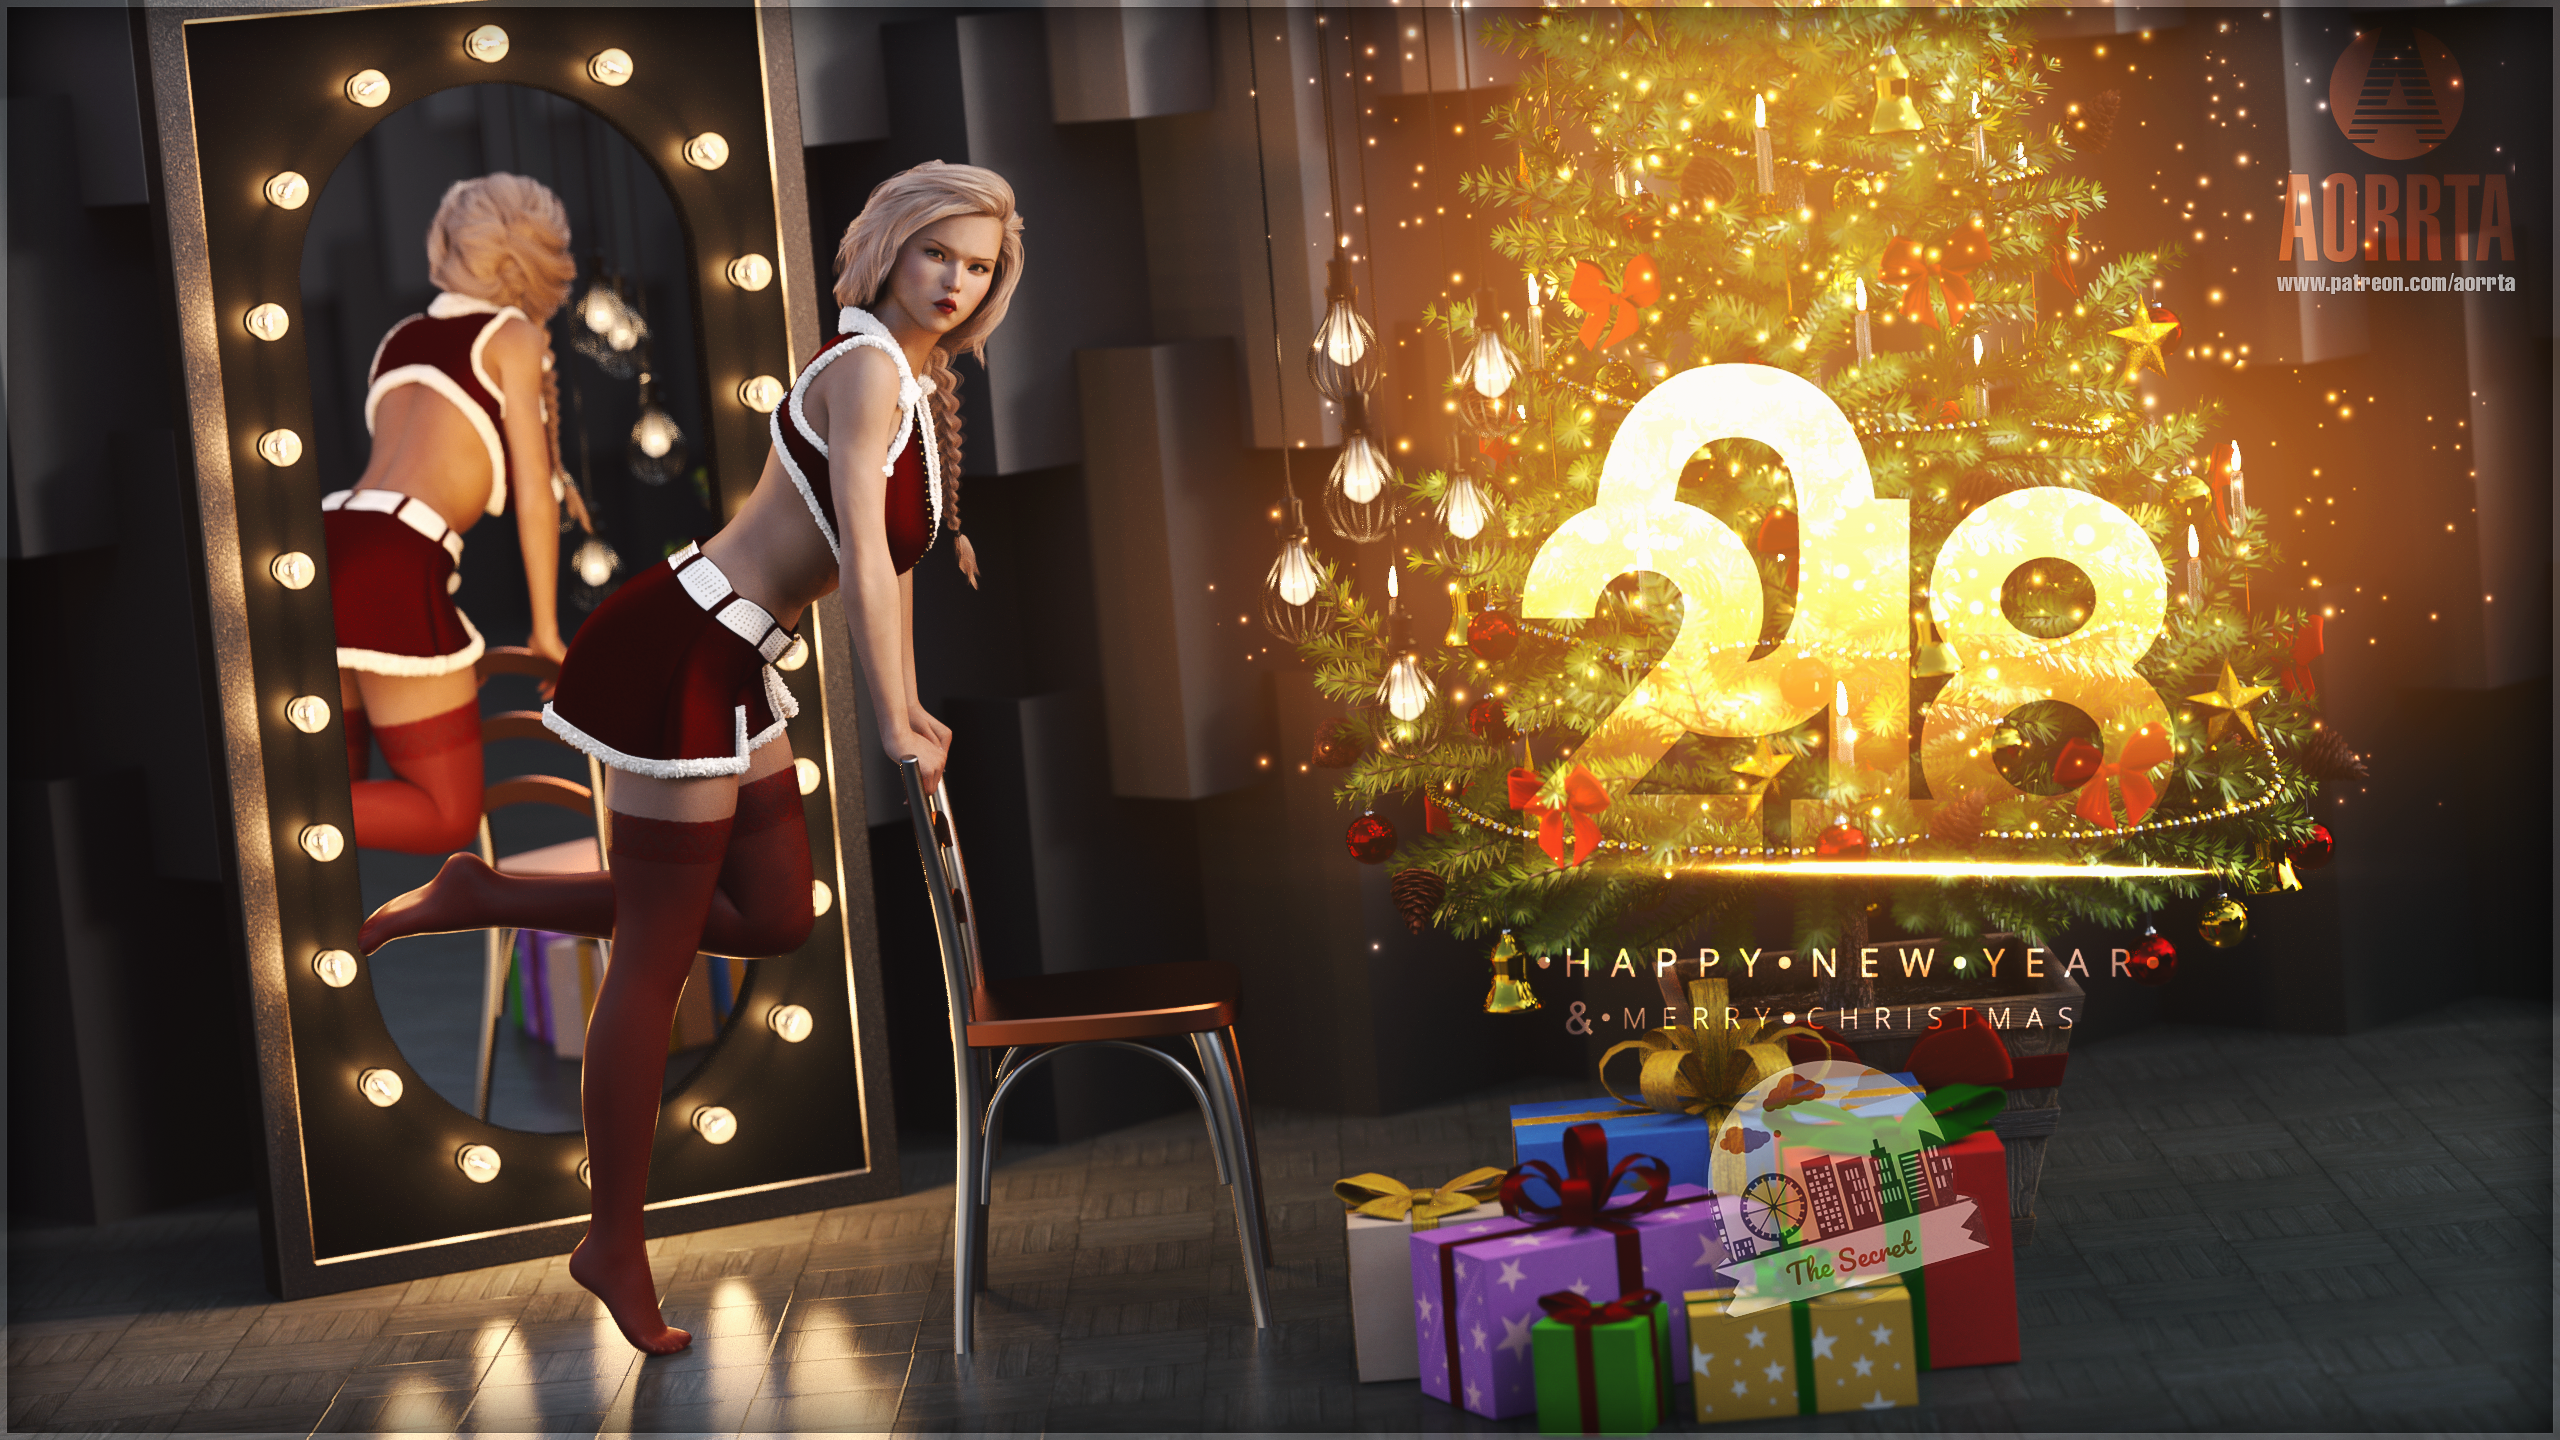 General 2560x1440 3D CG Christmas New Year 2018 (Year) santa outfit ass bra feet legs lingerie panties stockings thigh-highs